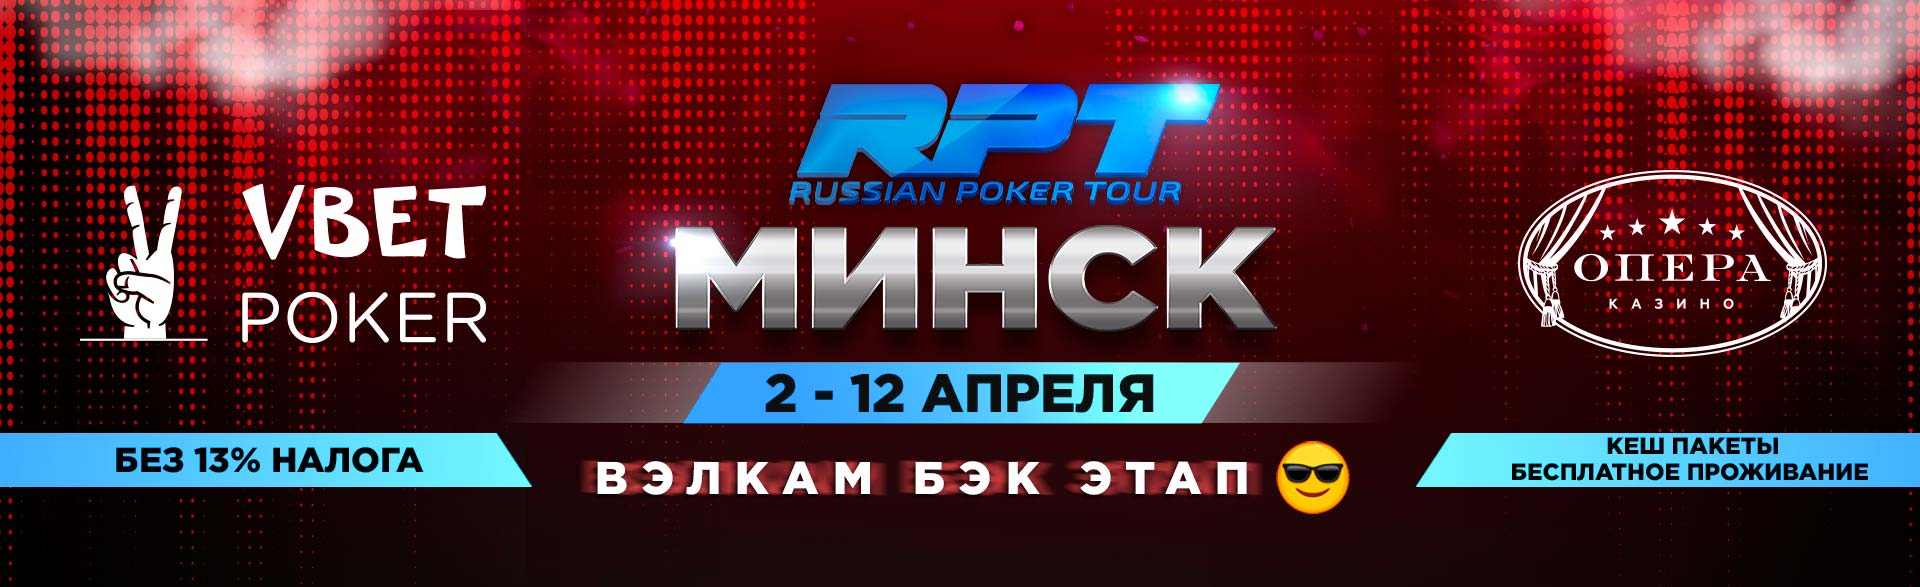 Сателлиты на Vbet Russian Poker Tour